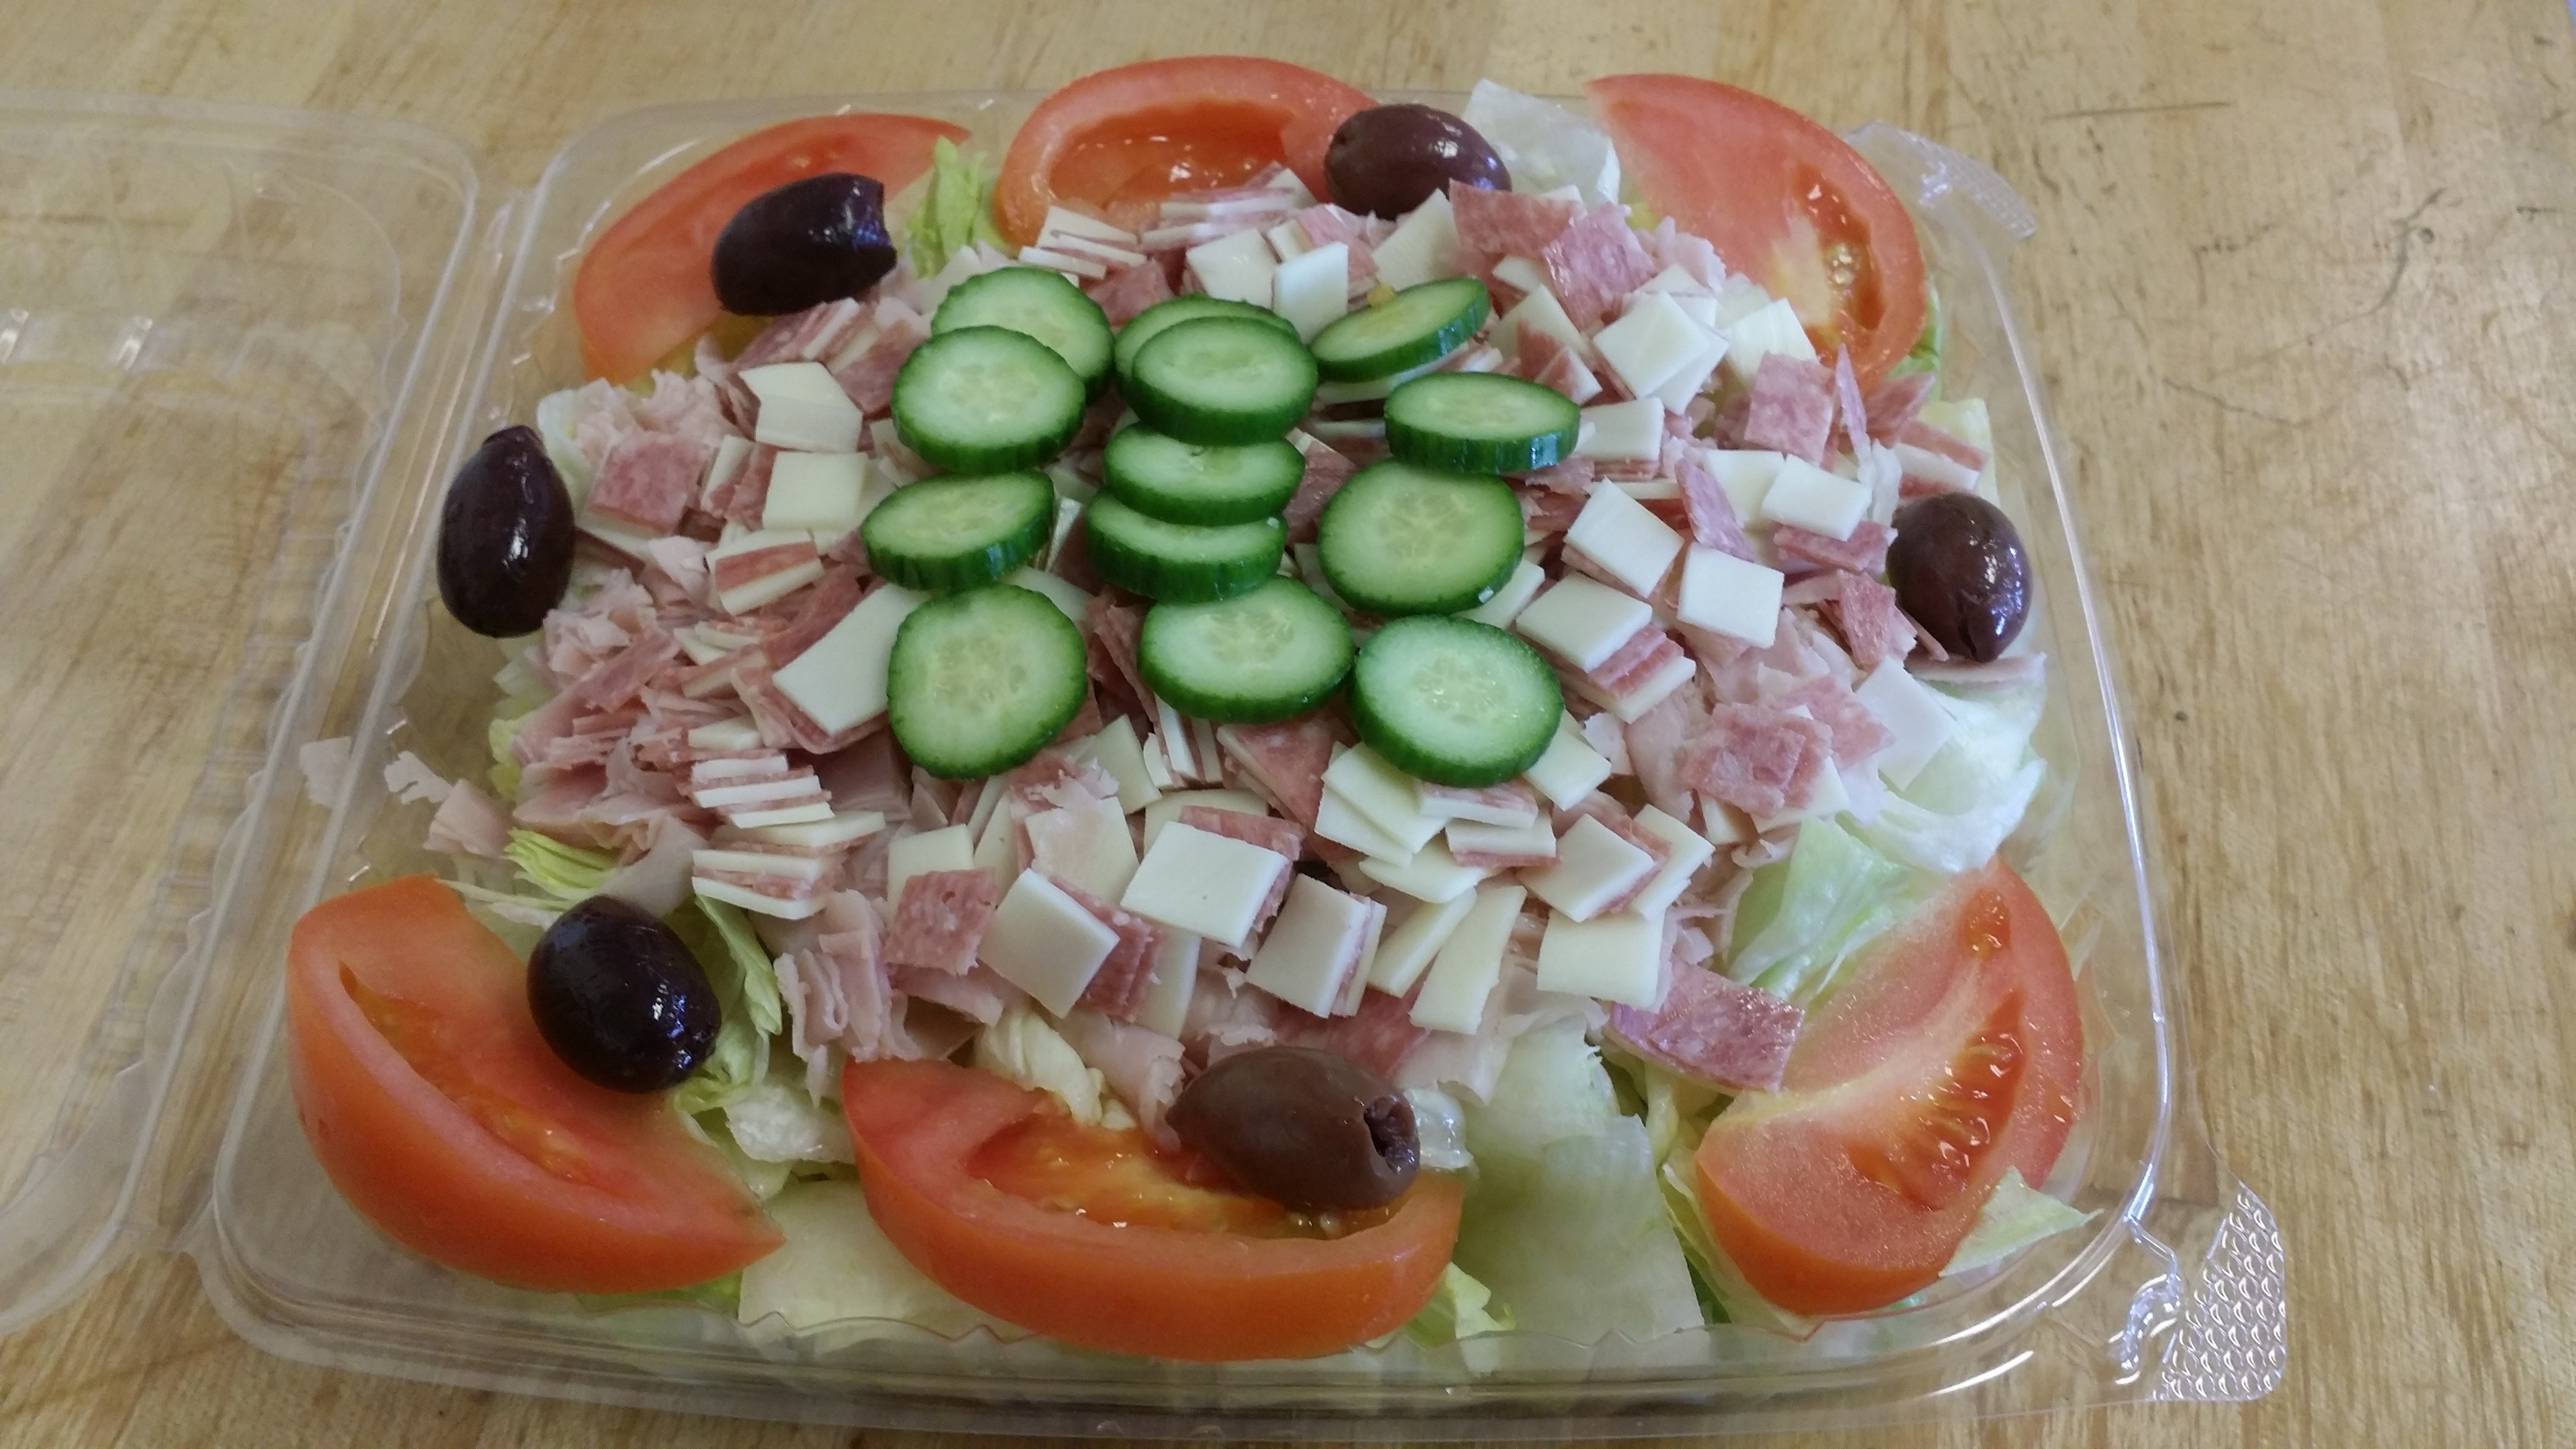 Zino's Sub Pizza and Catering, Madison Heights MI